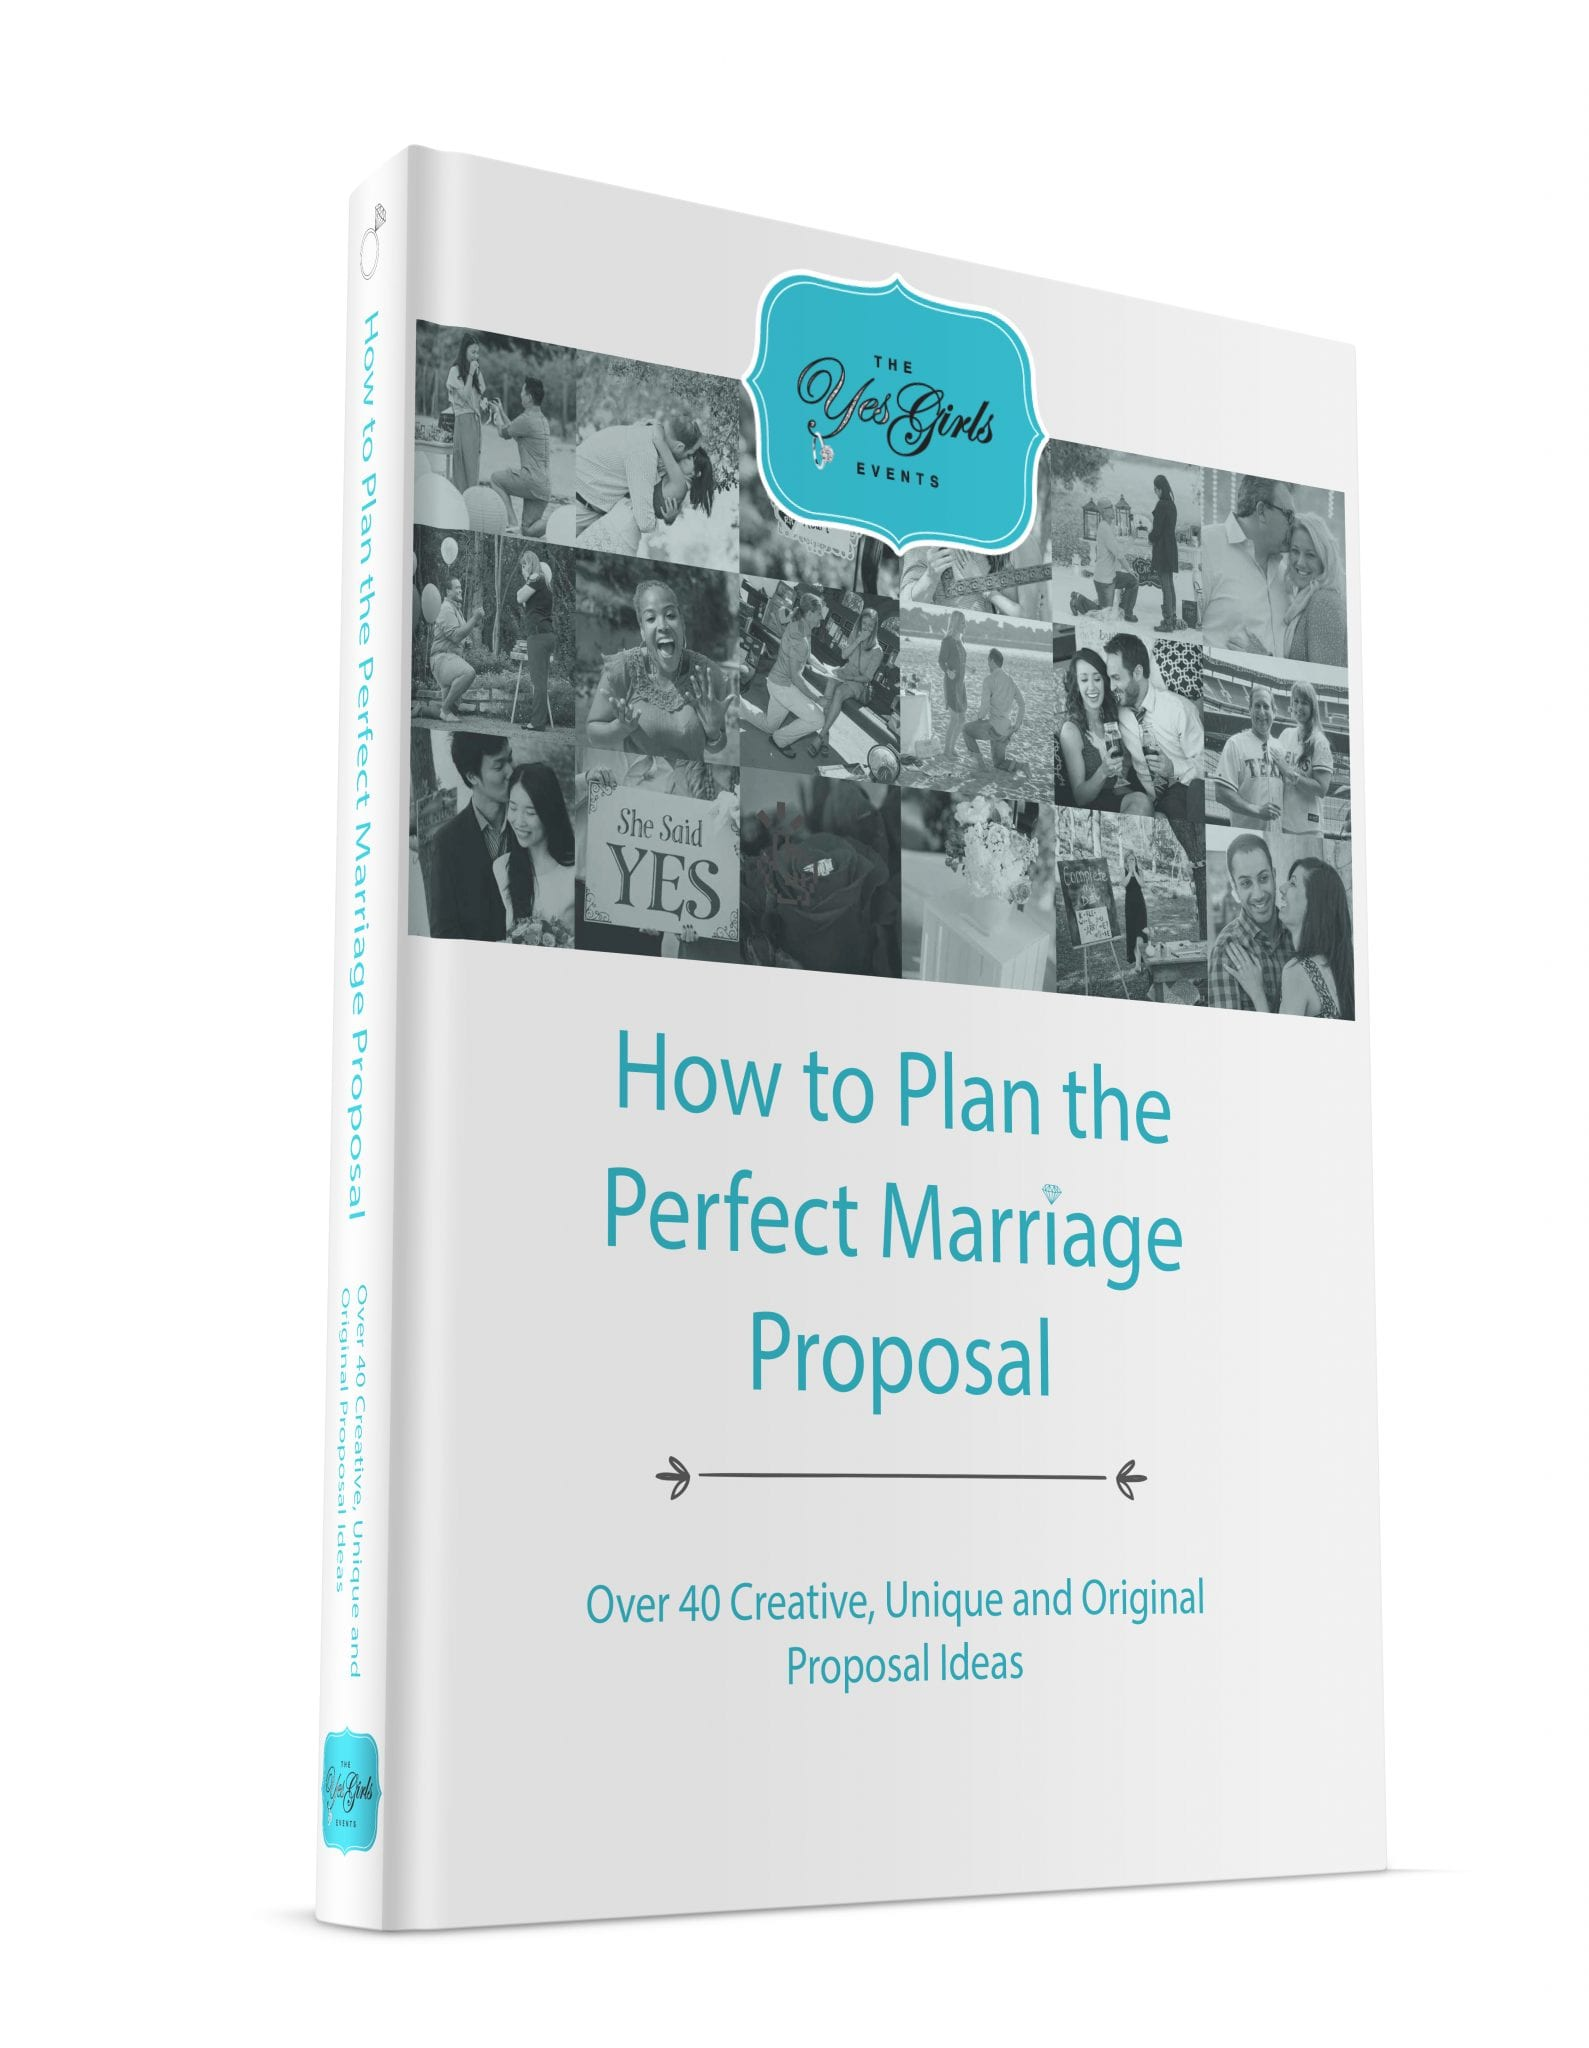 How to Propose, Marriage Proposal Ideas, Ask Her to Marry You, Romantic Proposal Ideas, Creative Proposals